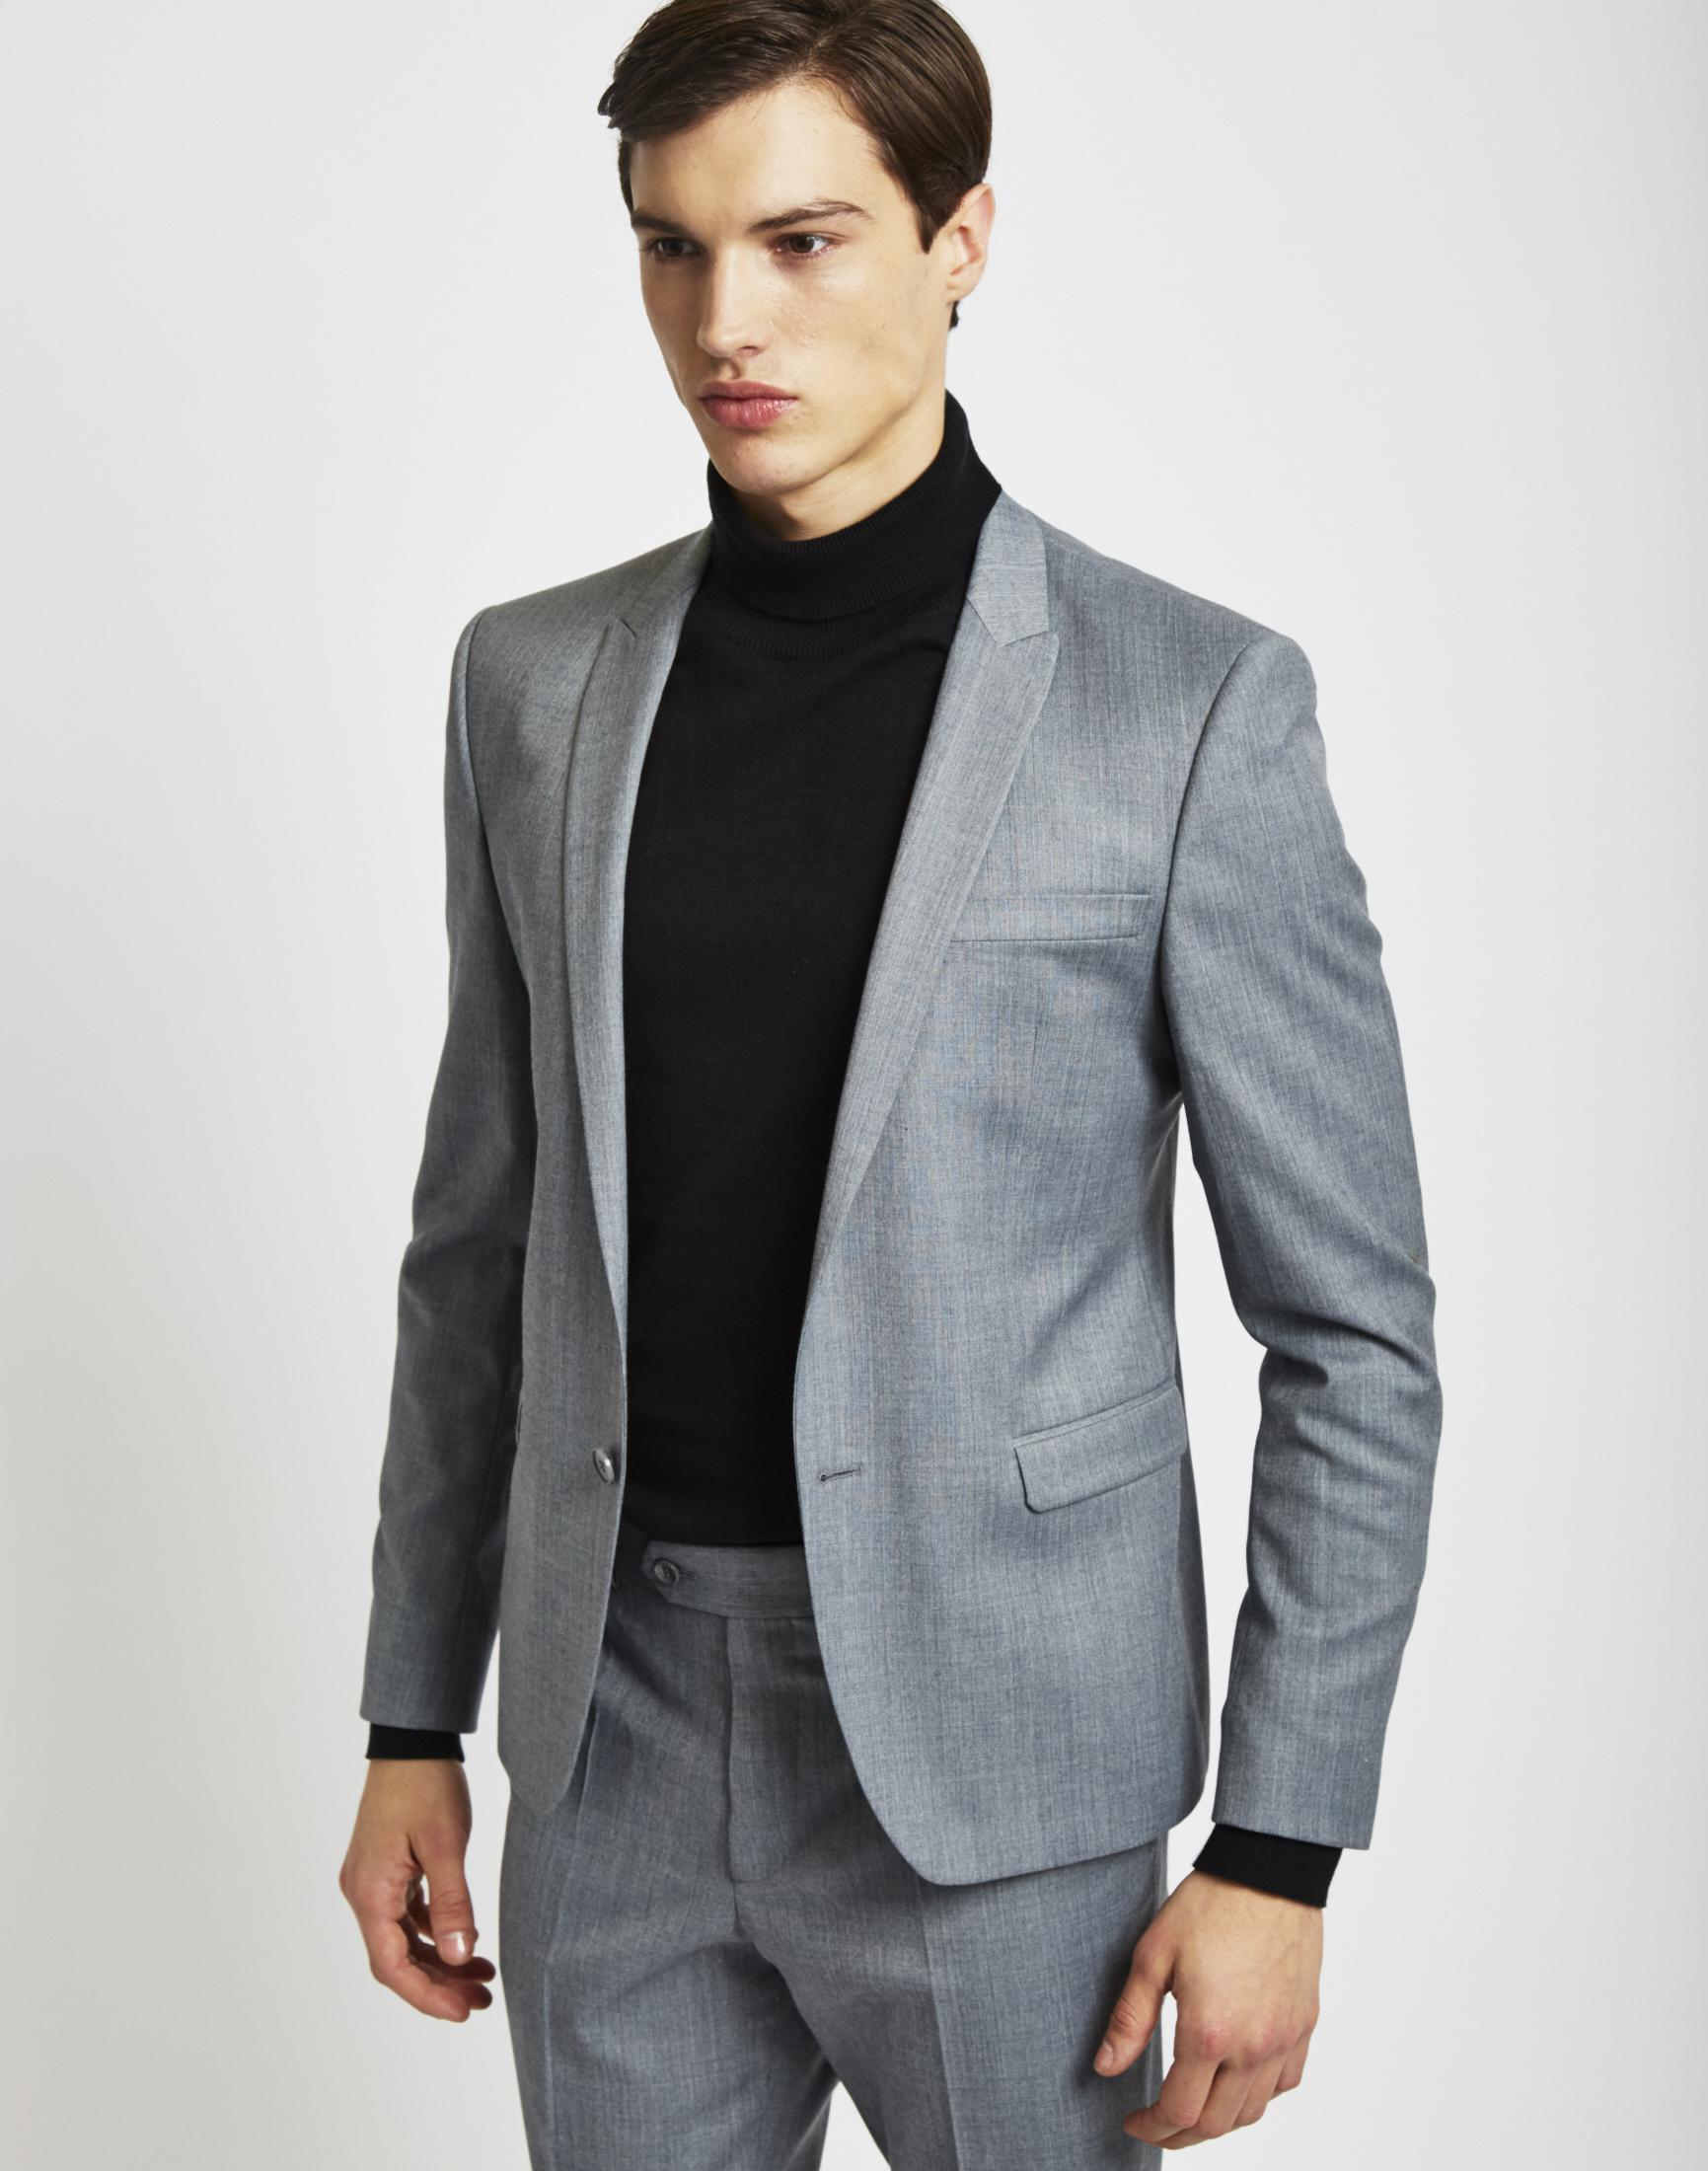 Lyst - The Idle Man Suit Jacket In Skinny Fit - Grey in Gray for Men